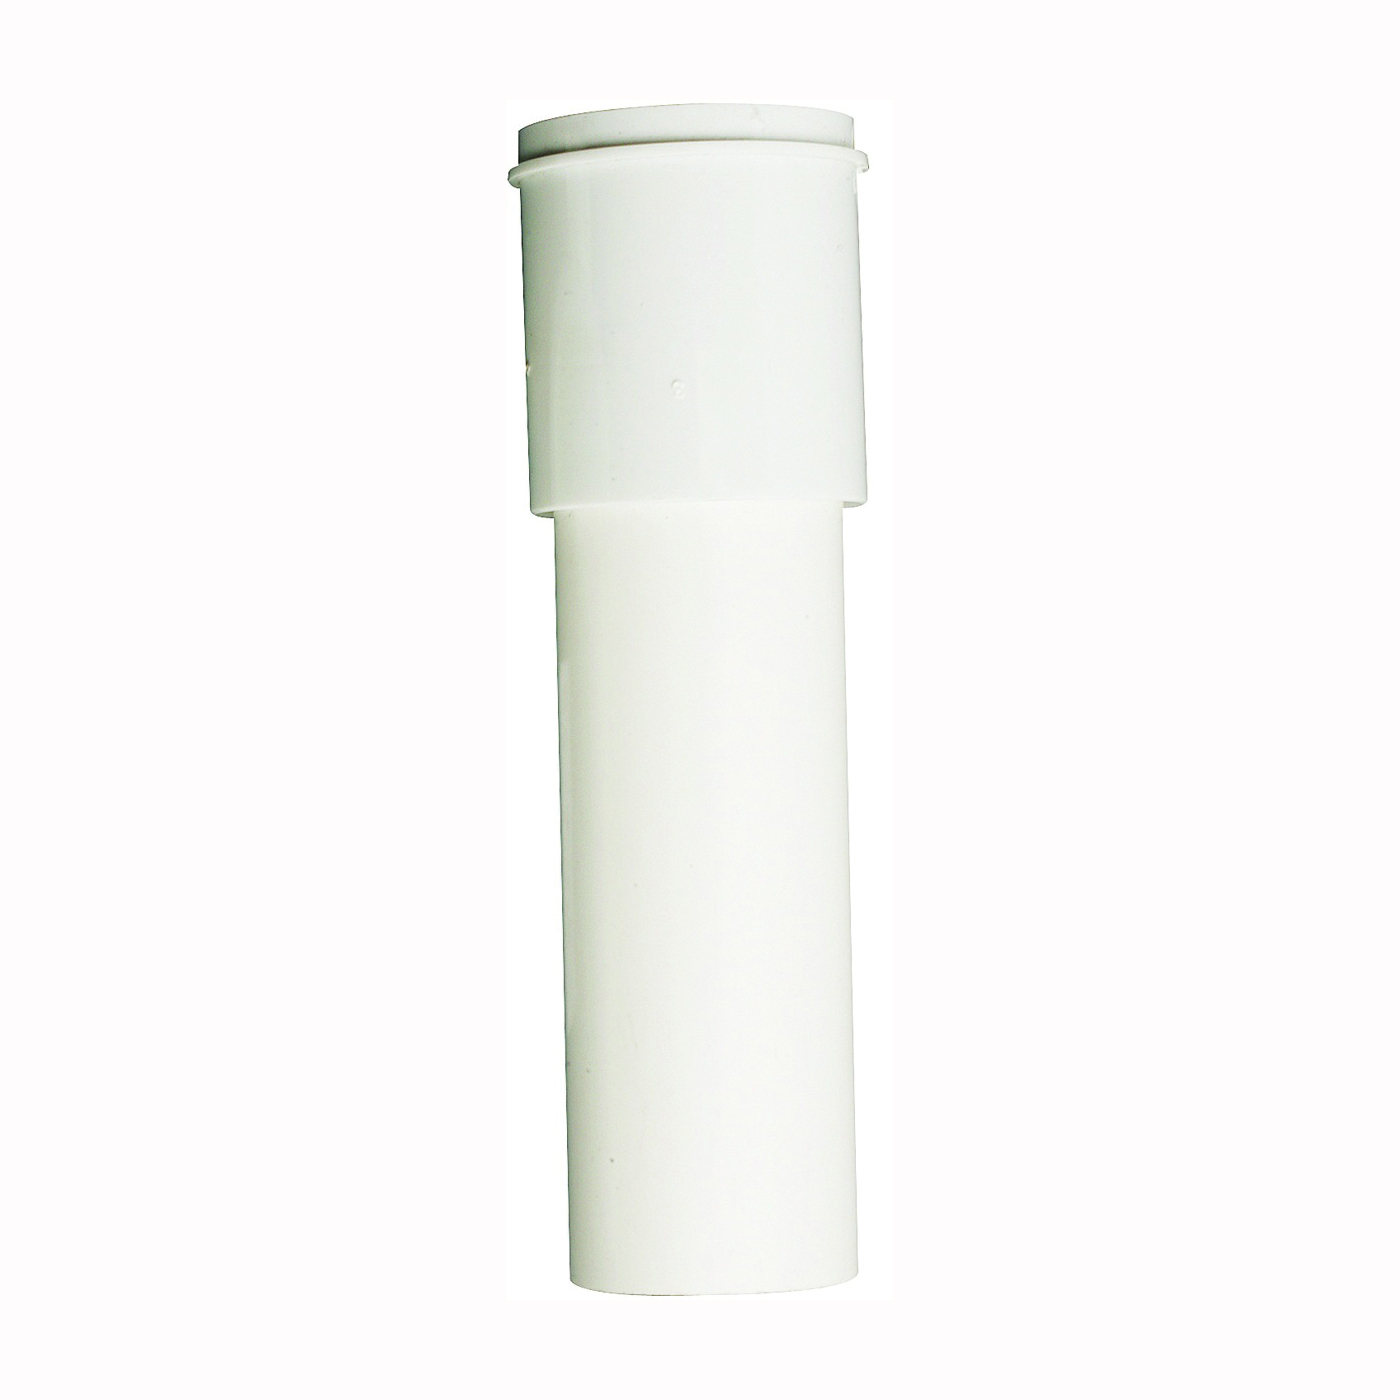 Picture of Plumb Pak PP911W Extension Tube, 1-1/2 x 1-1/2 in, 12 in L, Slip Joint, Plastic, White